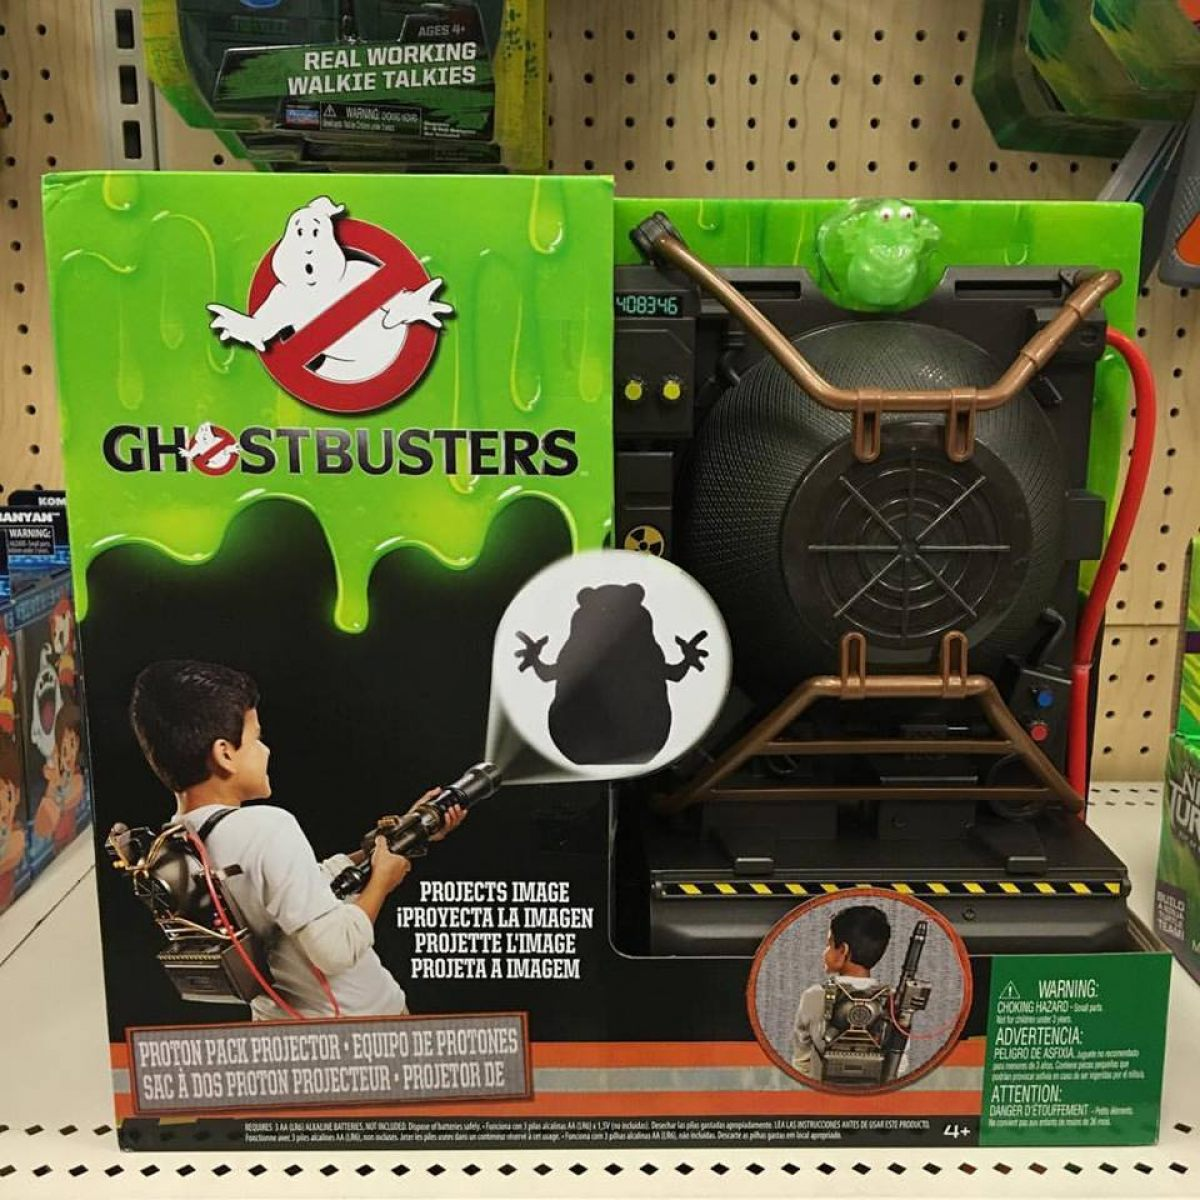 Ghostbusters Proton Pack Toy For Kids